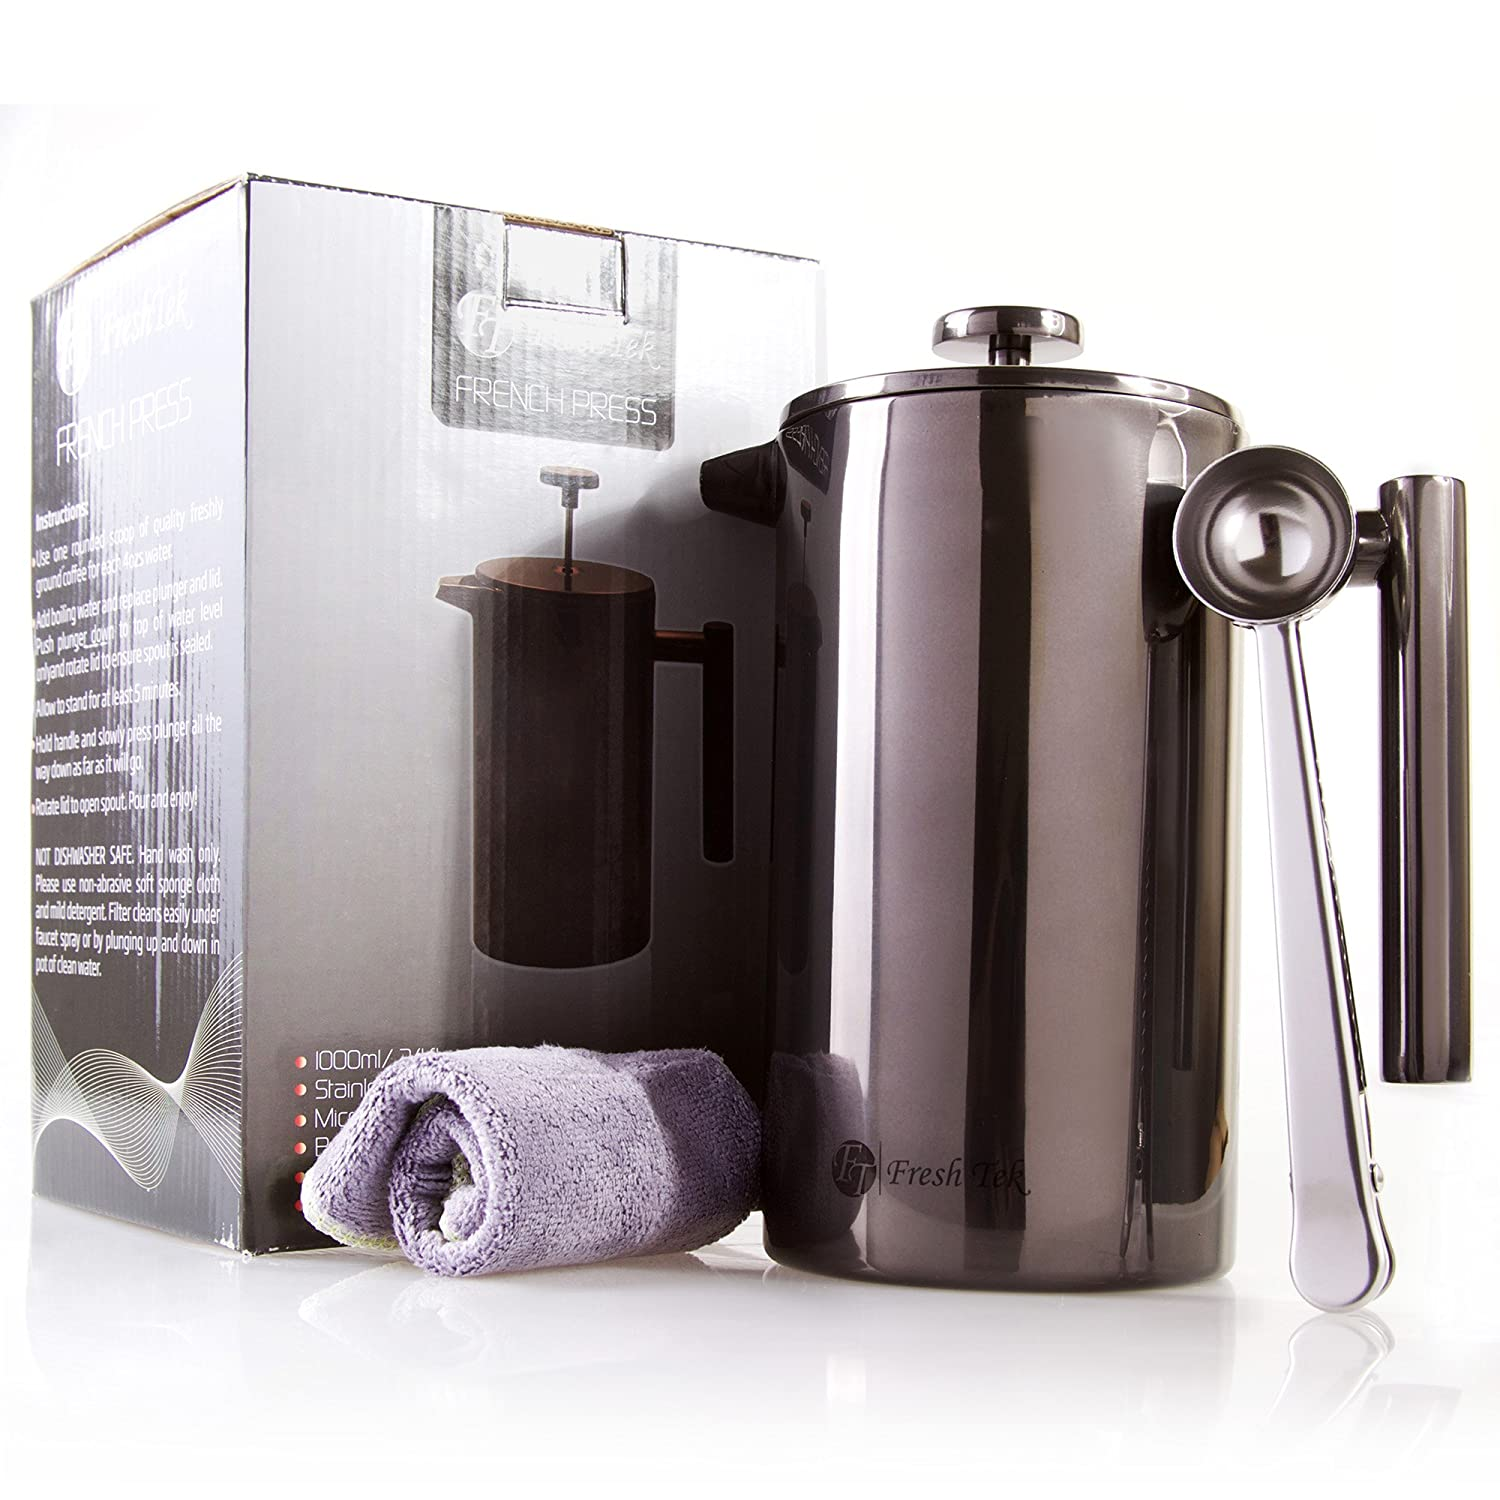 Insulated Double Wall Stainless Steel French Press Coffee Maker by FreshTek That Uses No Plastic or Glass (34oz)